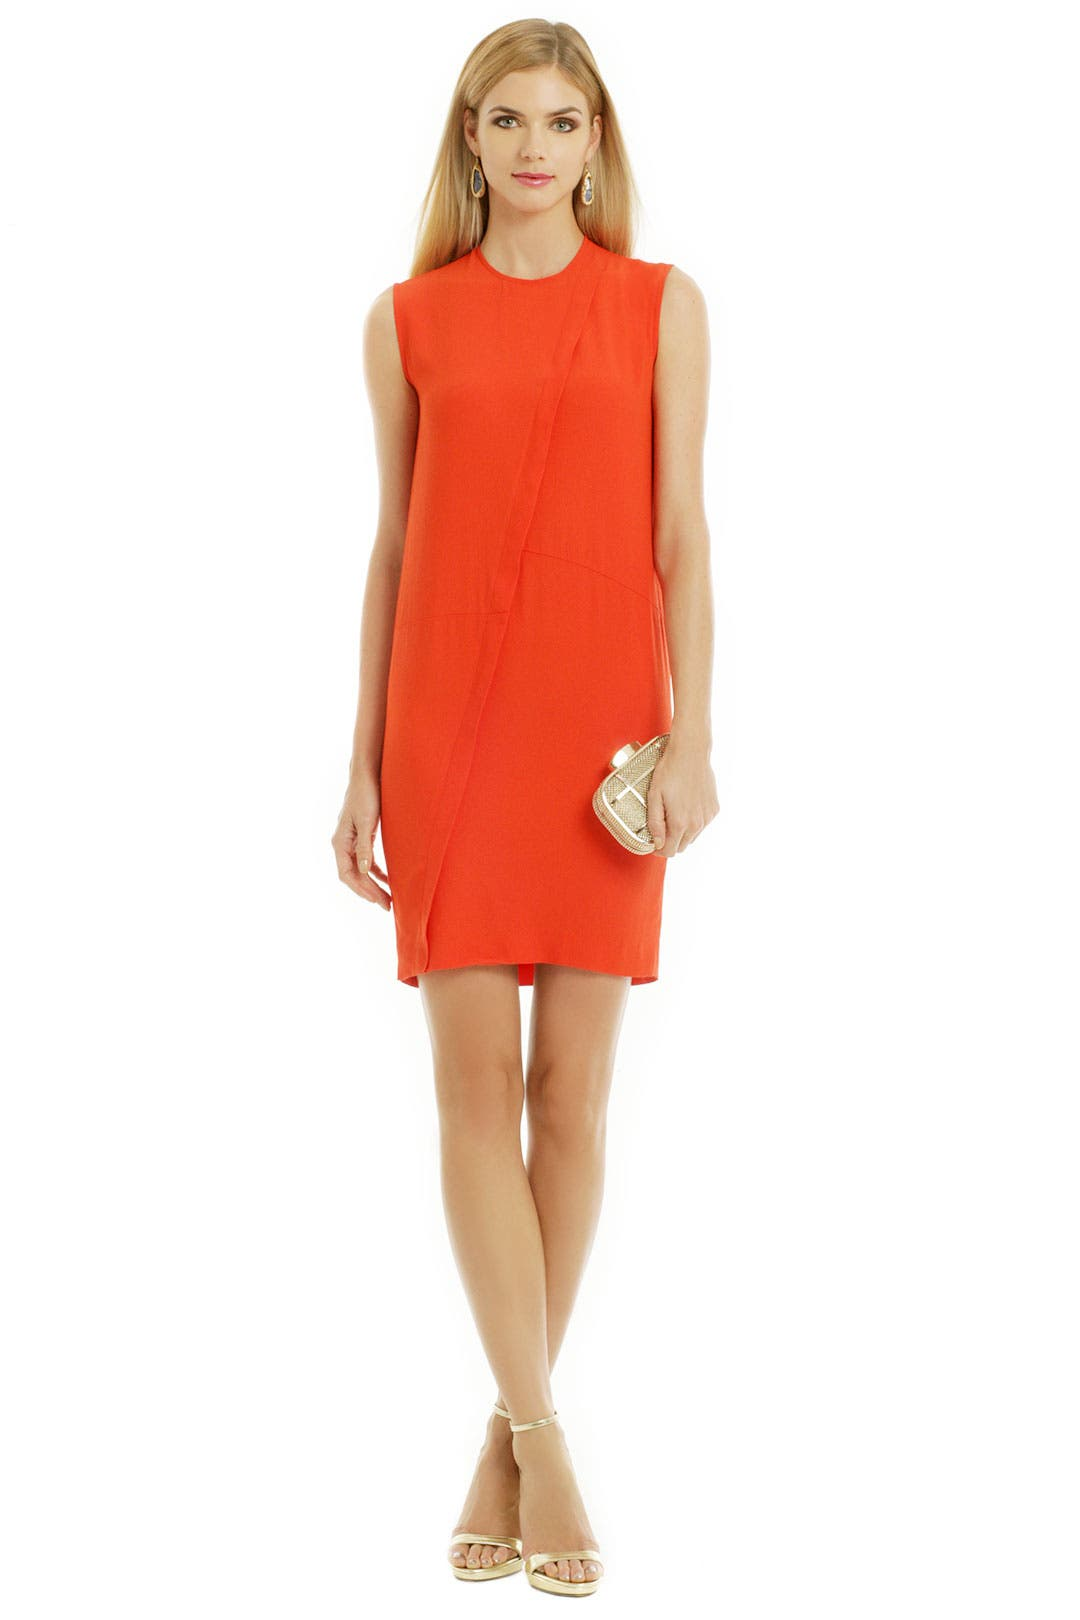 Go Shifty With It Dress by Cedric Charlier